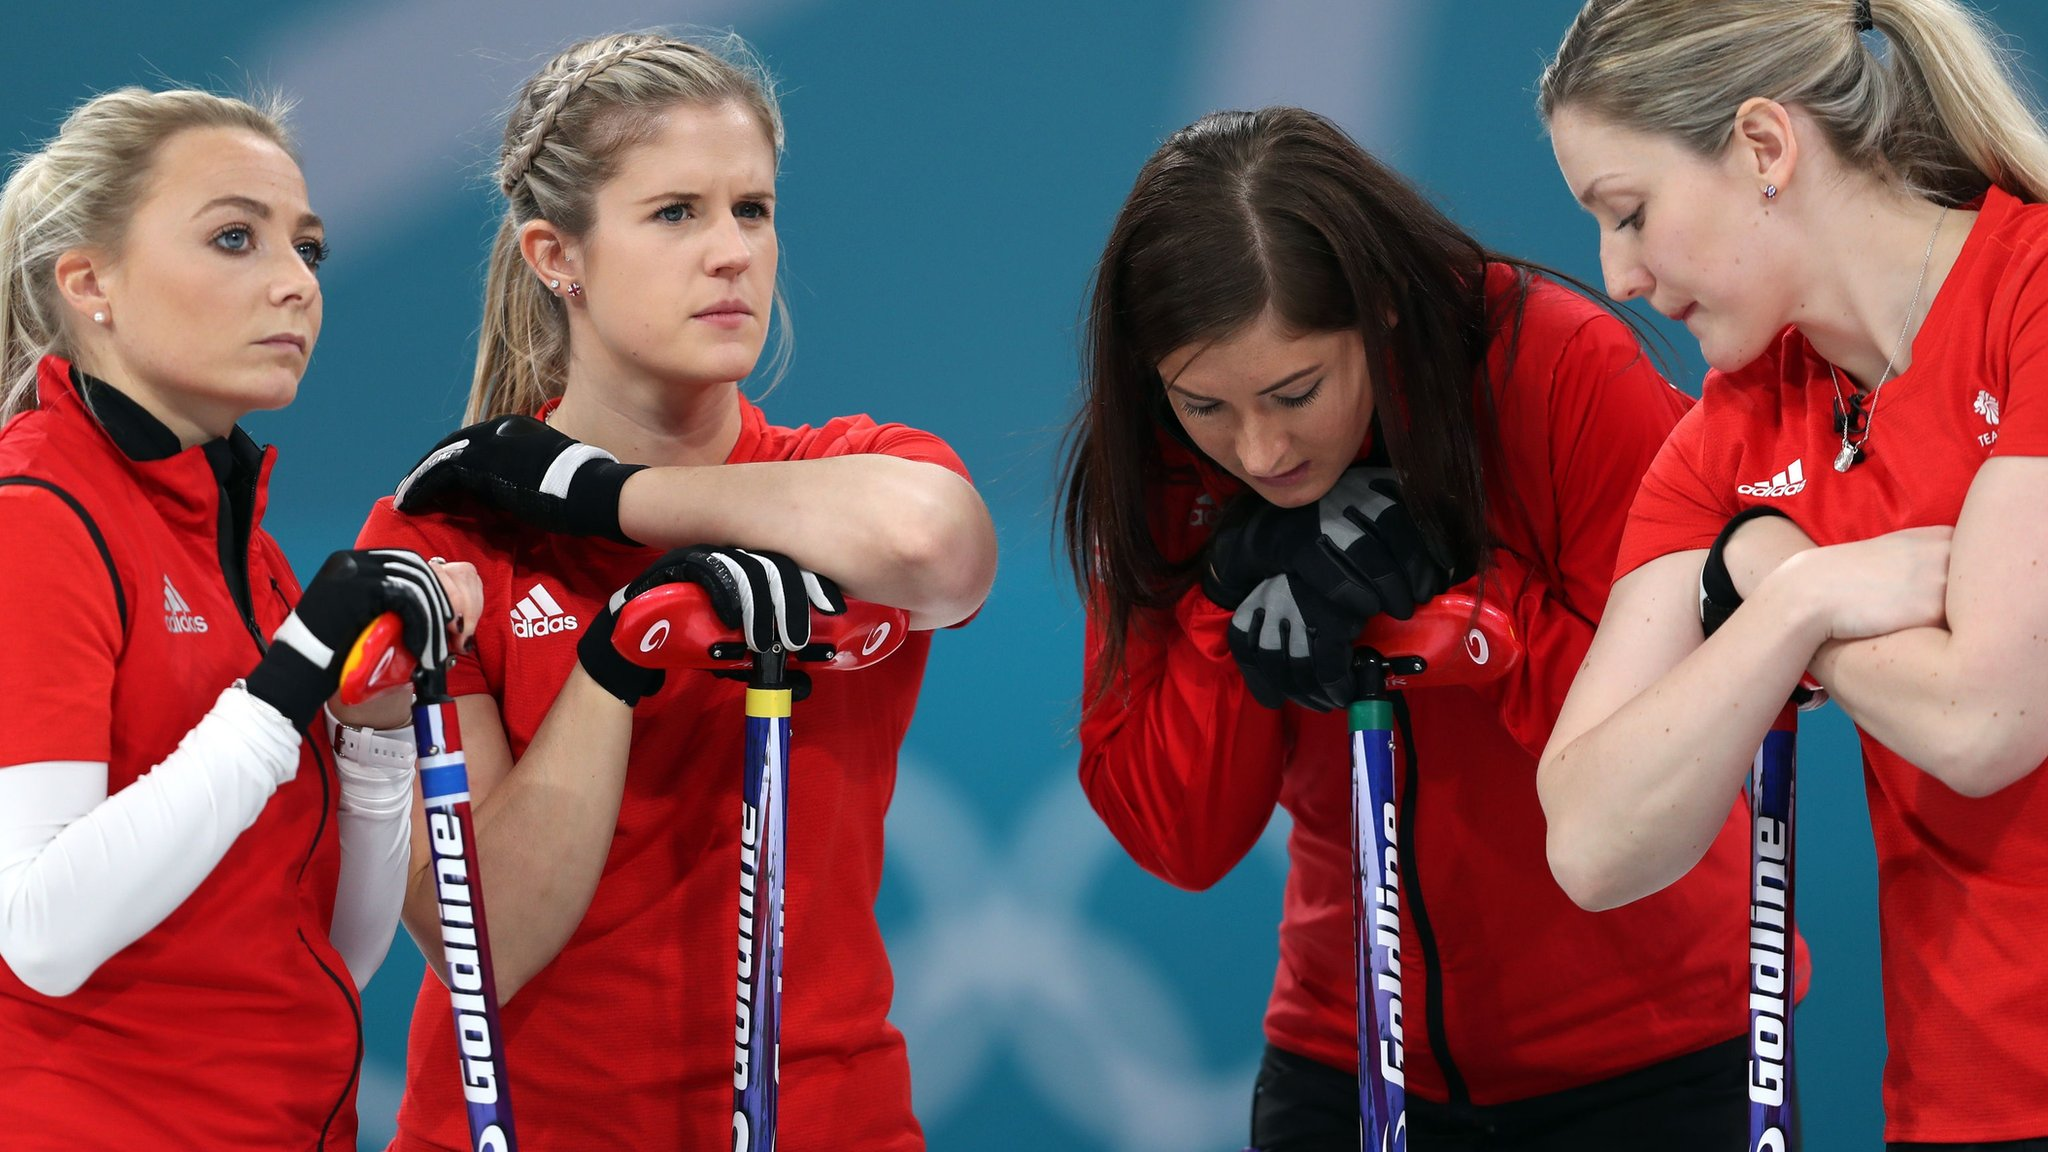 Winter Olympics: Great Britain's women lose to Japan in bronze-medal match